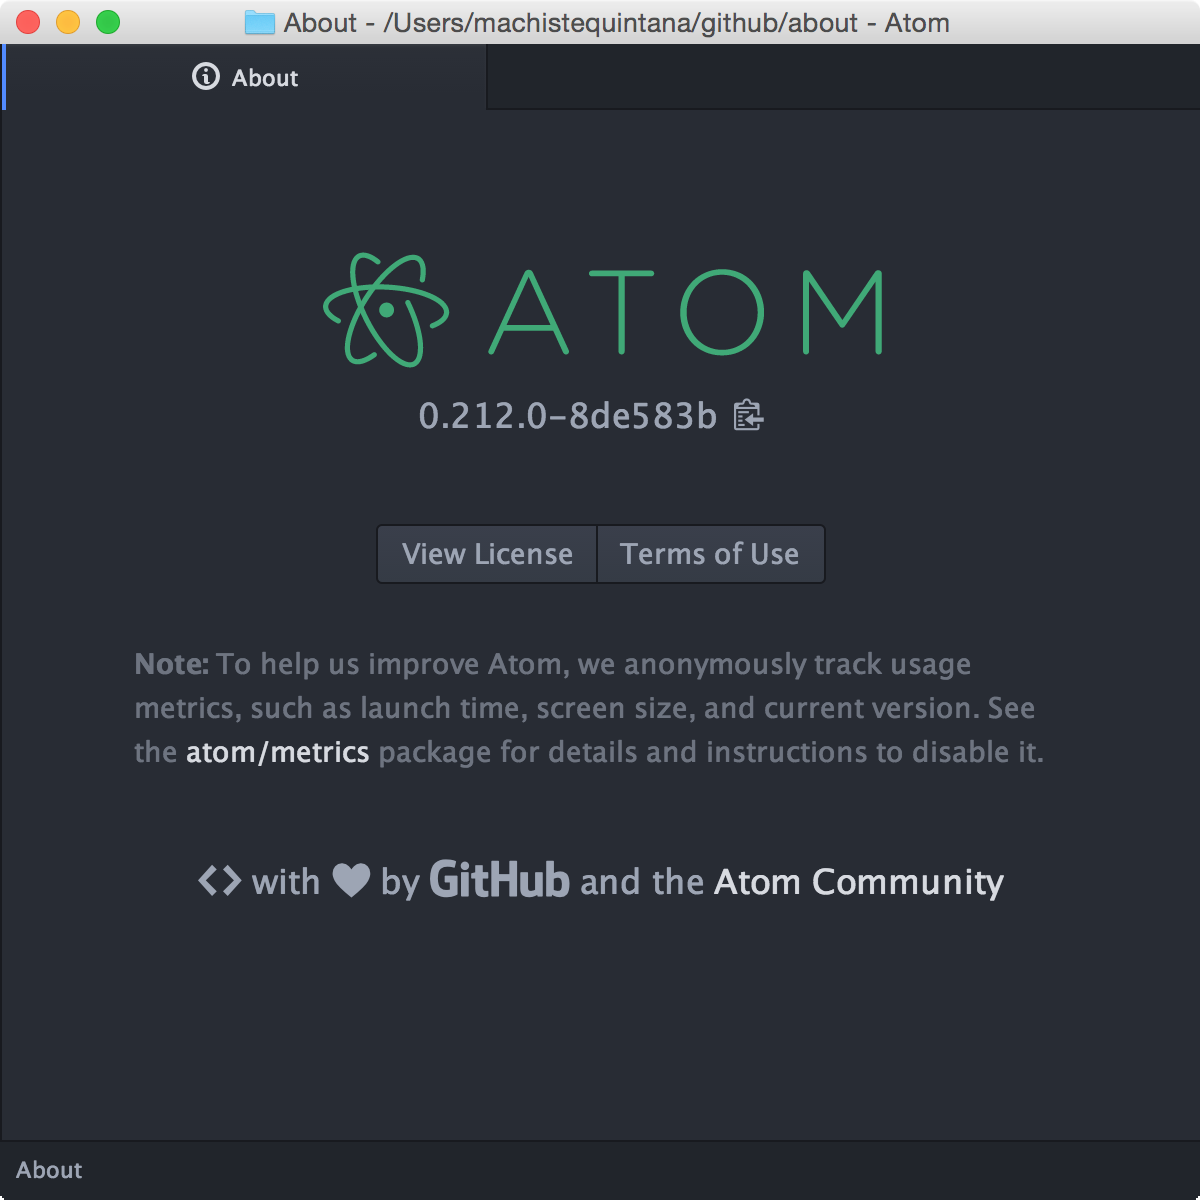 About Atom